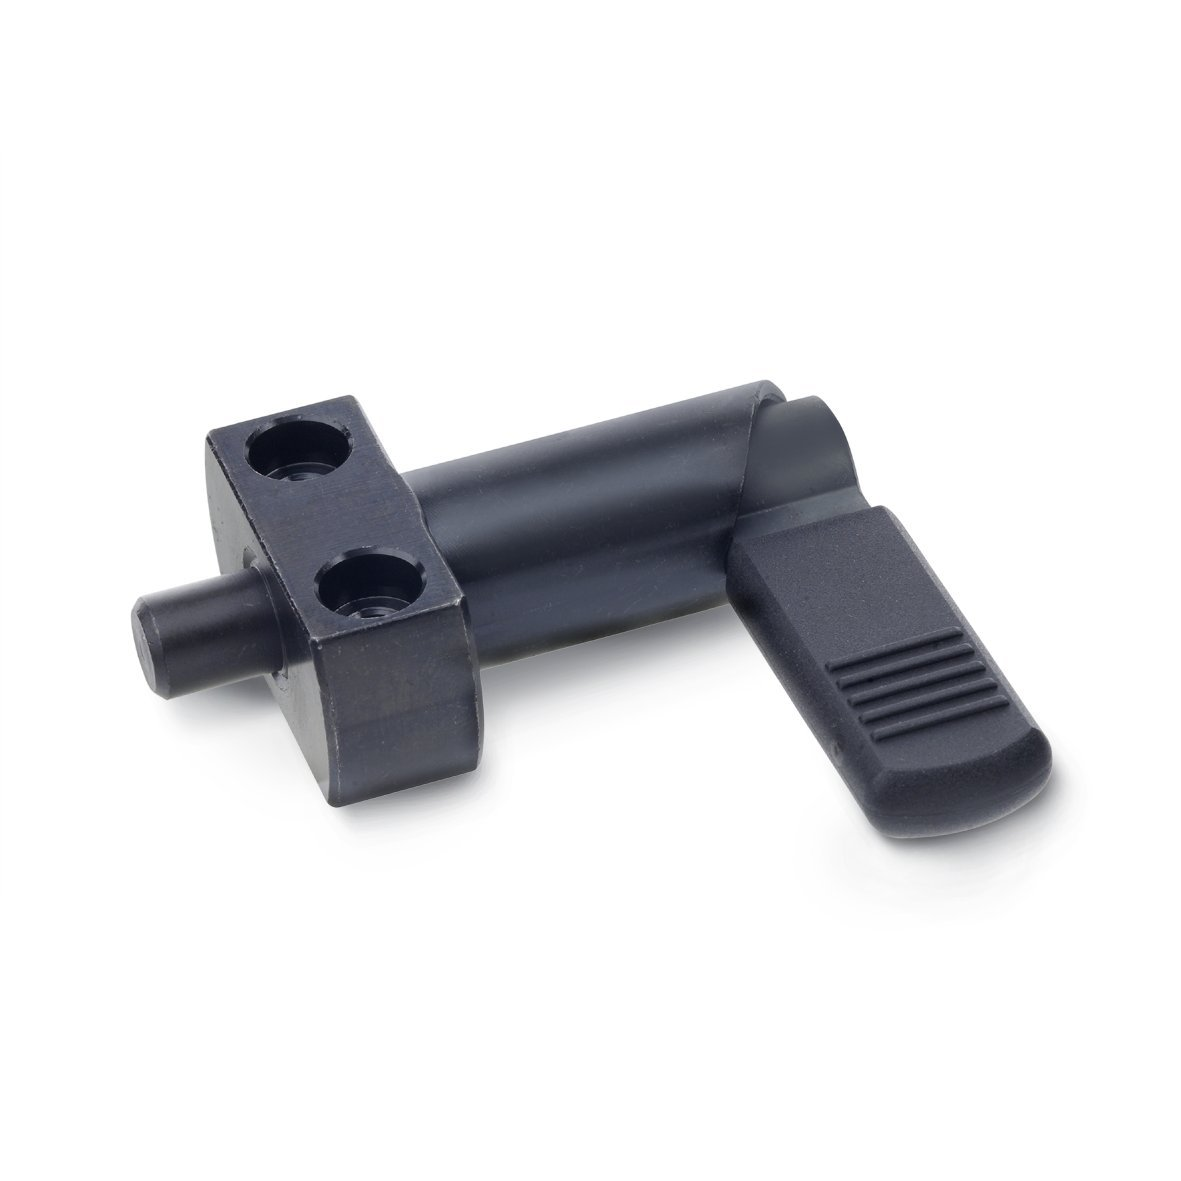 GN 612.2 Series Steel Cam Action Indexing Plunger with Mounting Flange, with Plastic Sleeve, 69mm Item Length, 8mm Item Diameter